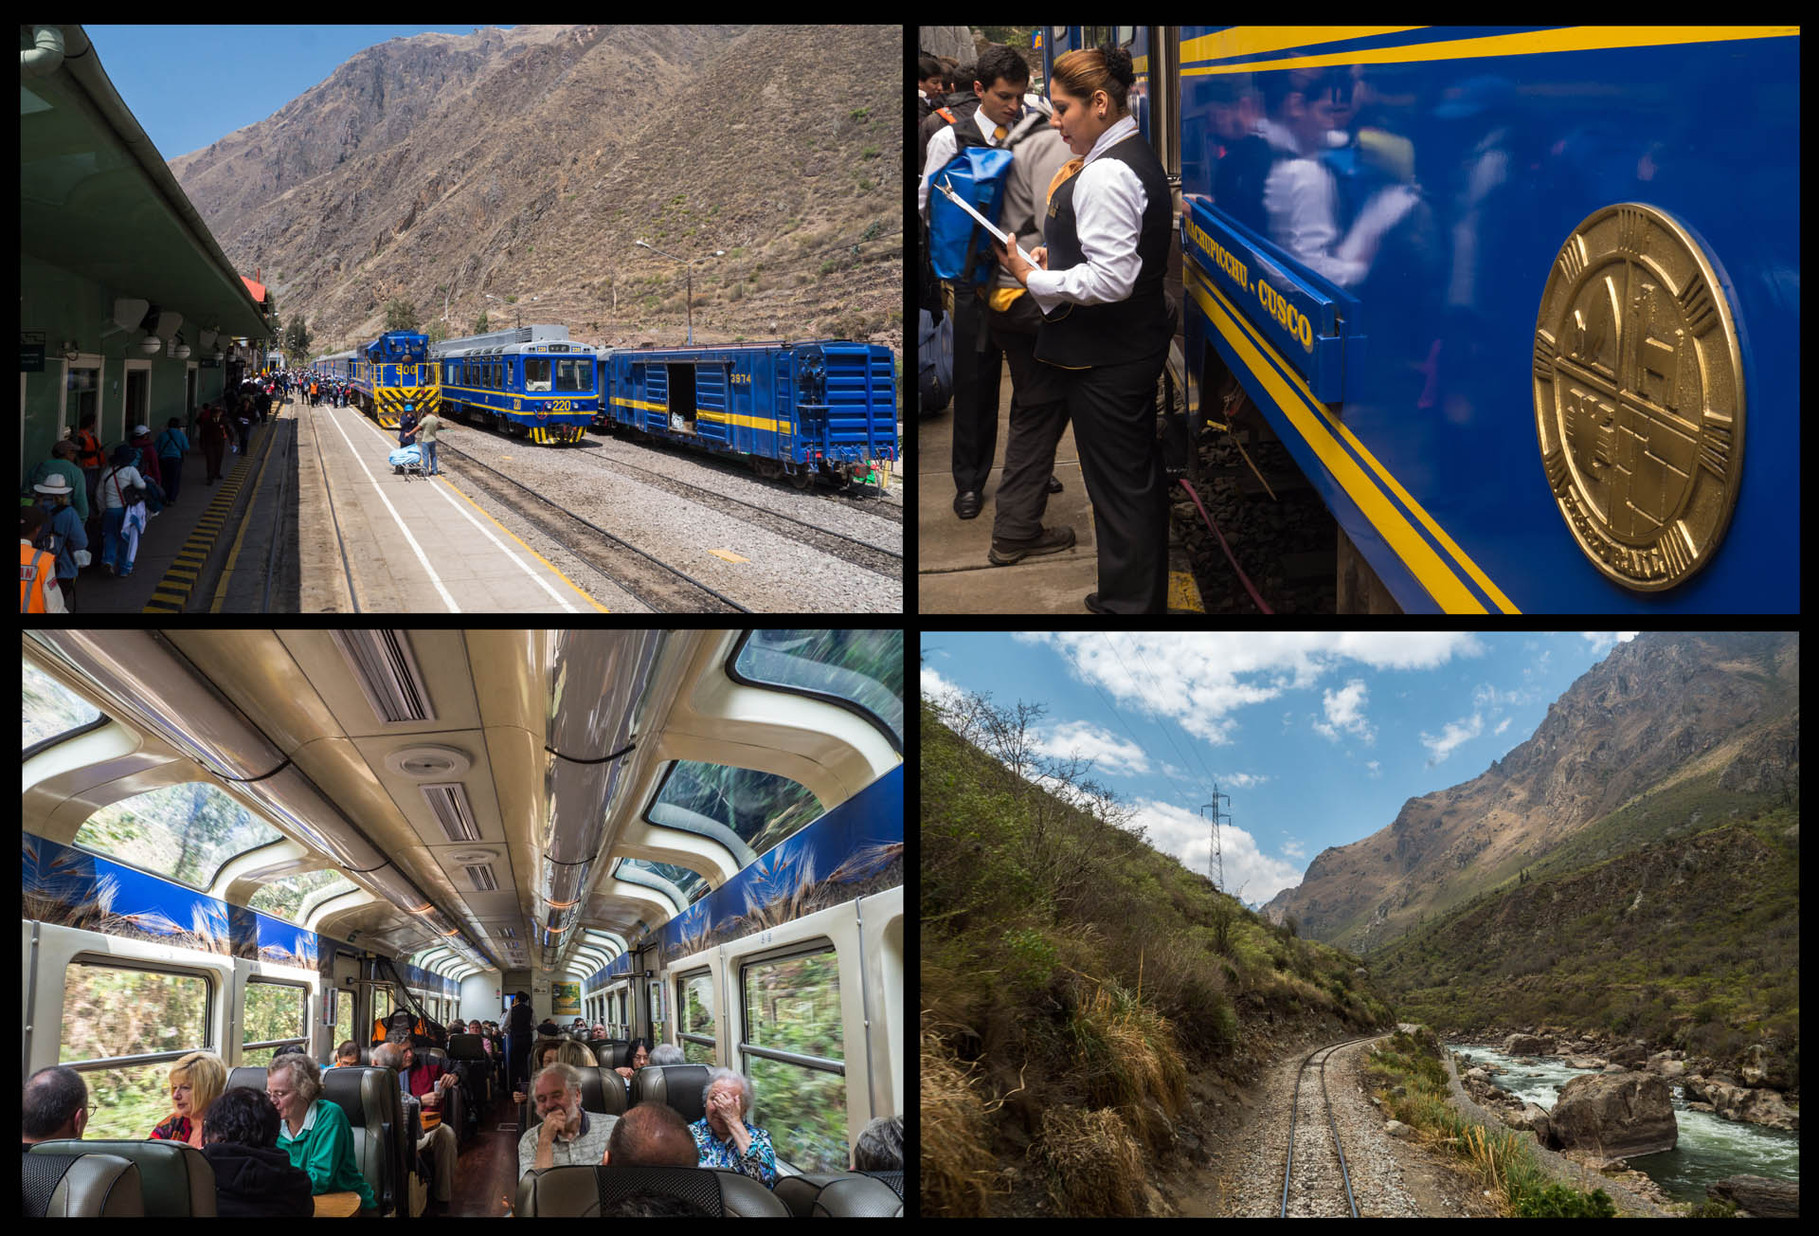 Train from Ollantaytambo to Aguas Calientes (=Machu Picchu Village)